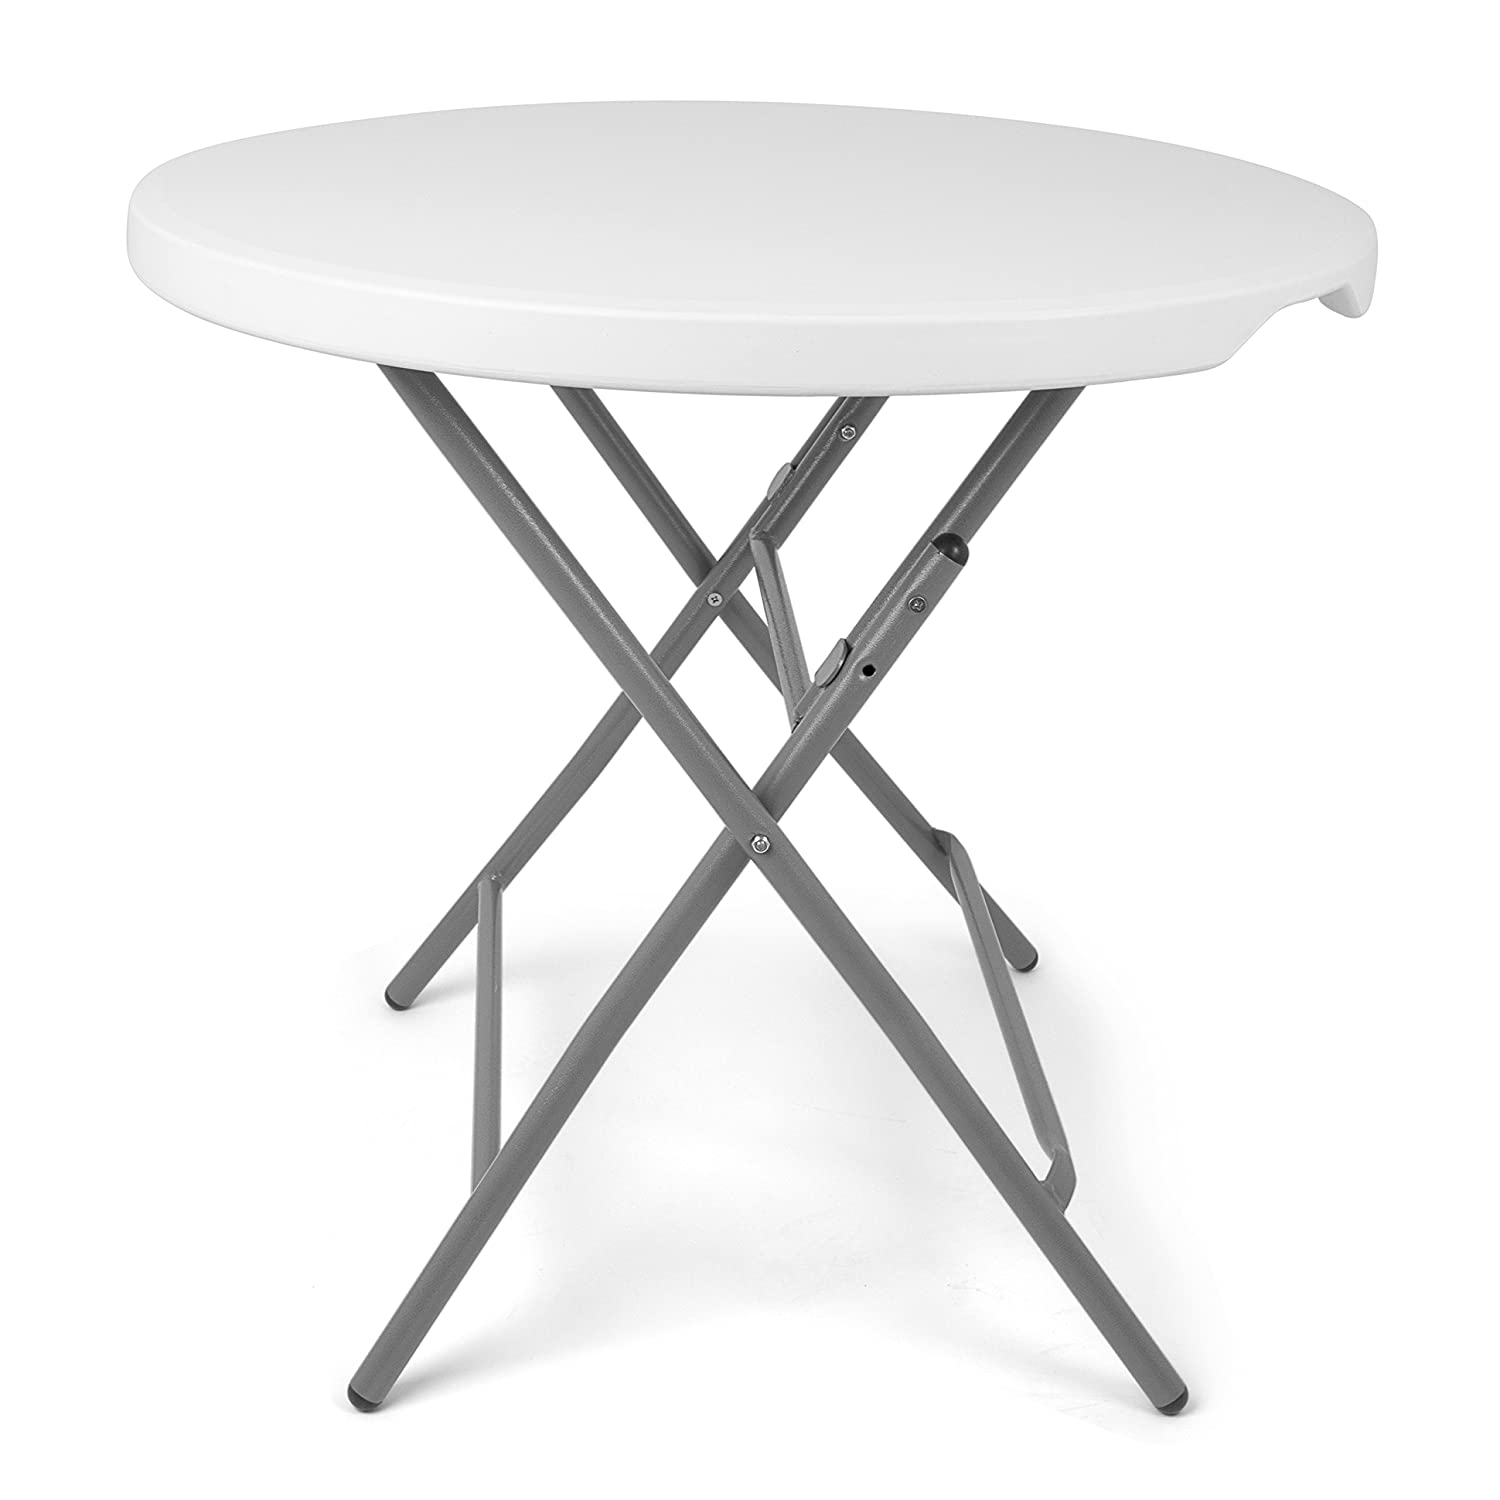 Park Alley PA-5212 Foldable Round Folding Balcony, Terrace and Garden – Can Be Used As Party Side Table – Diameter 80 cm – Height Approx. 74 cm, White, 80 x 74 x 110 cm